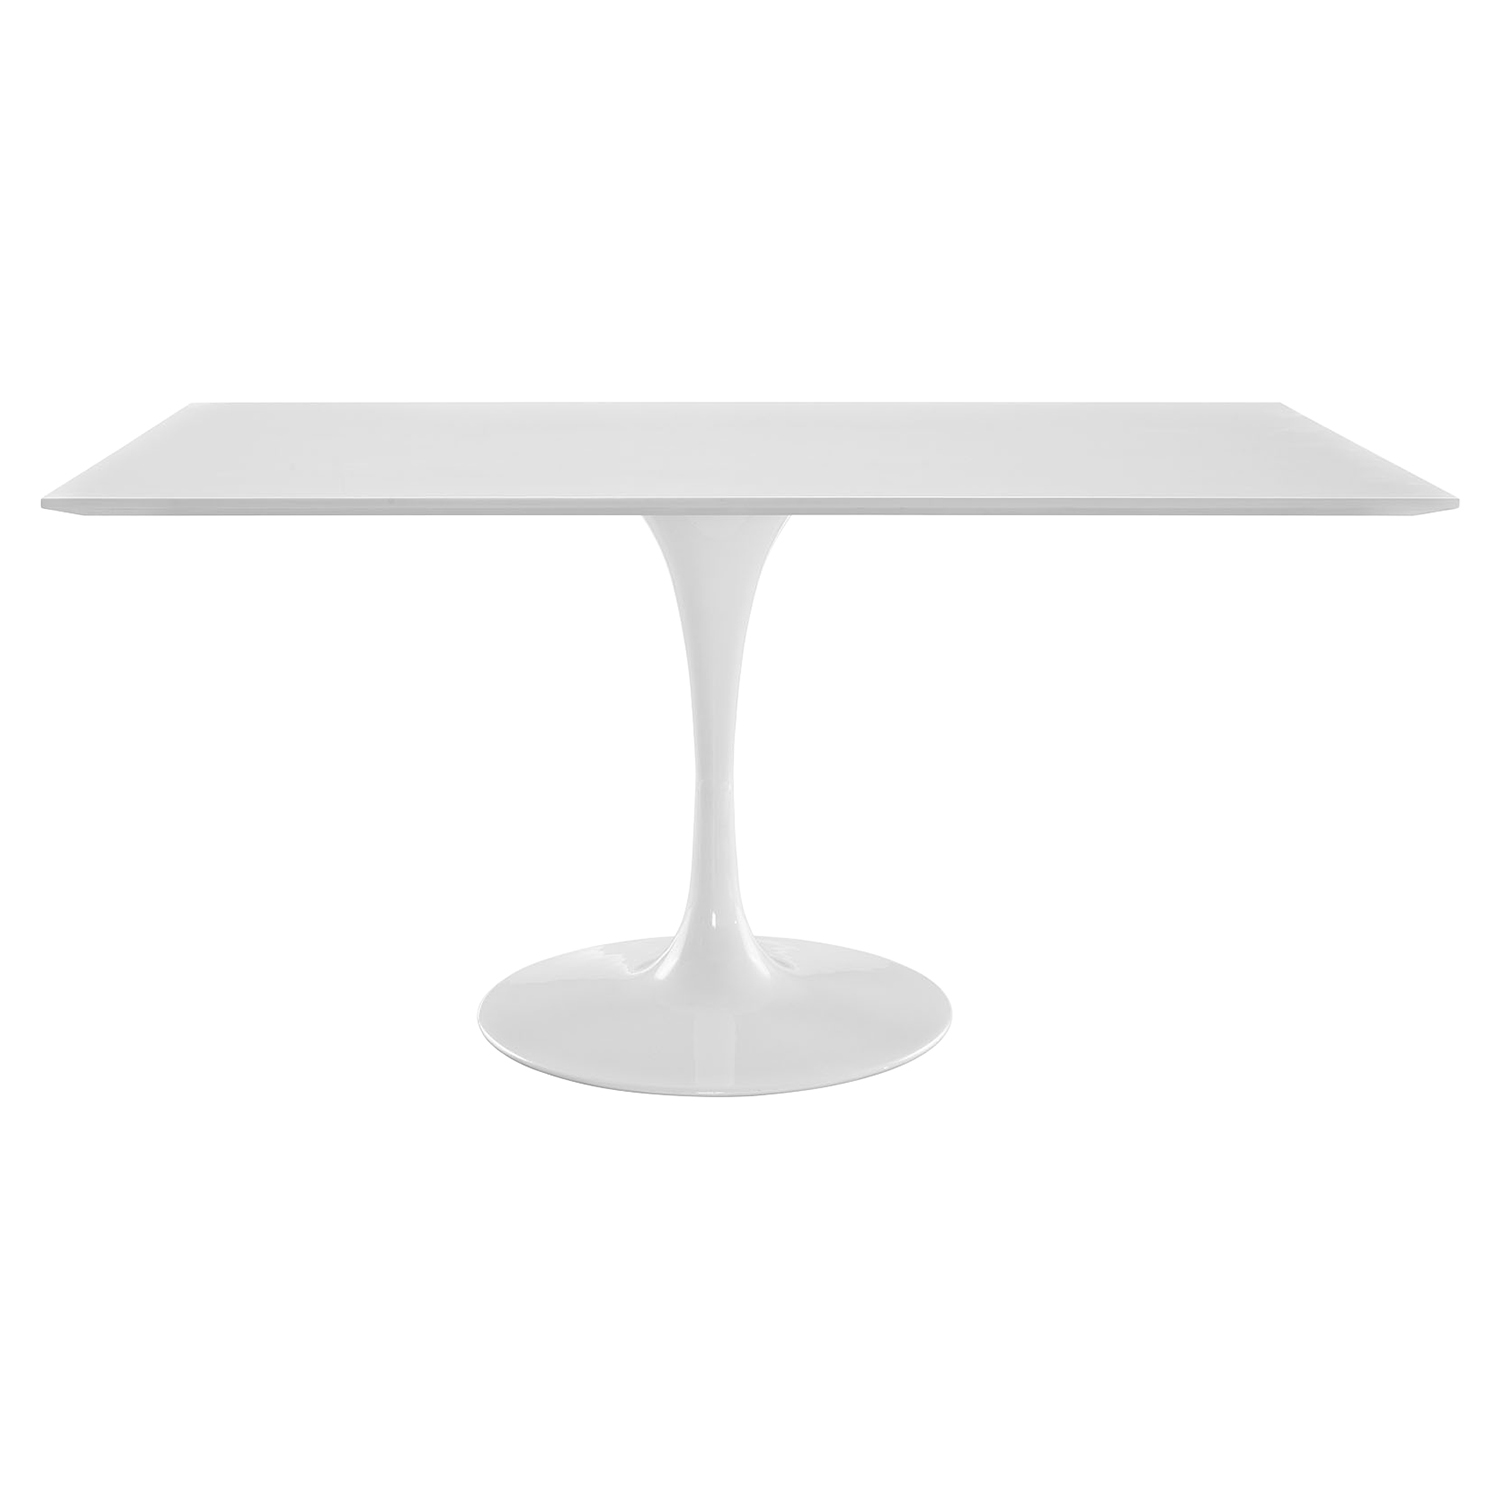 "Lippa 60"" Rectangle Dining Table - White - EEI-1656-WHI"